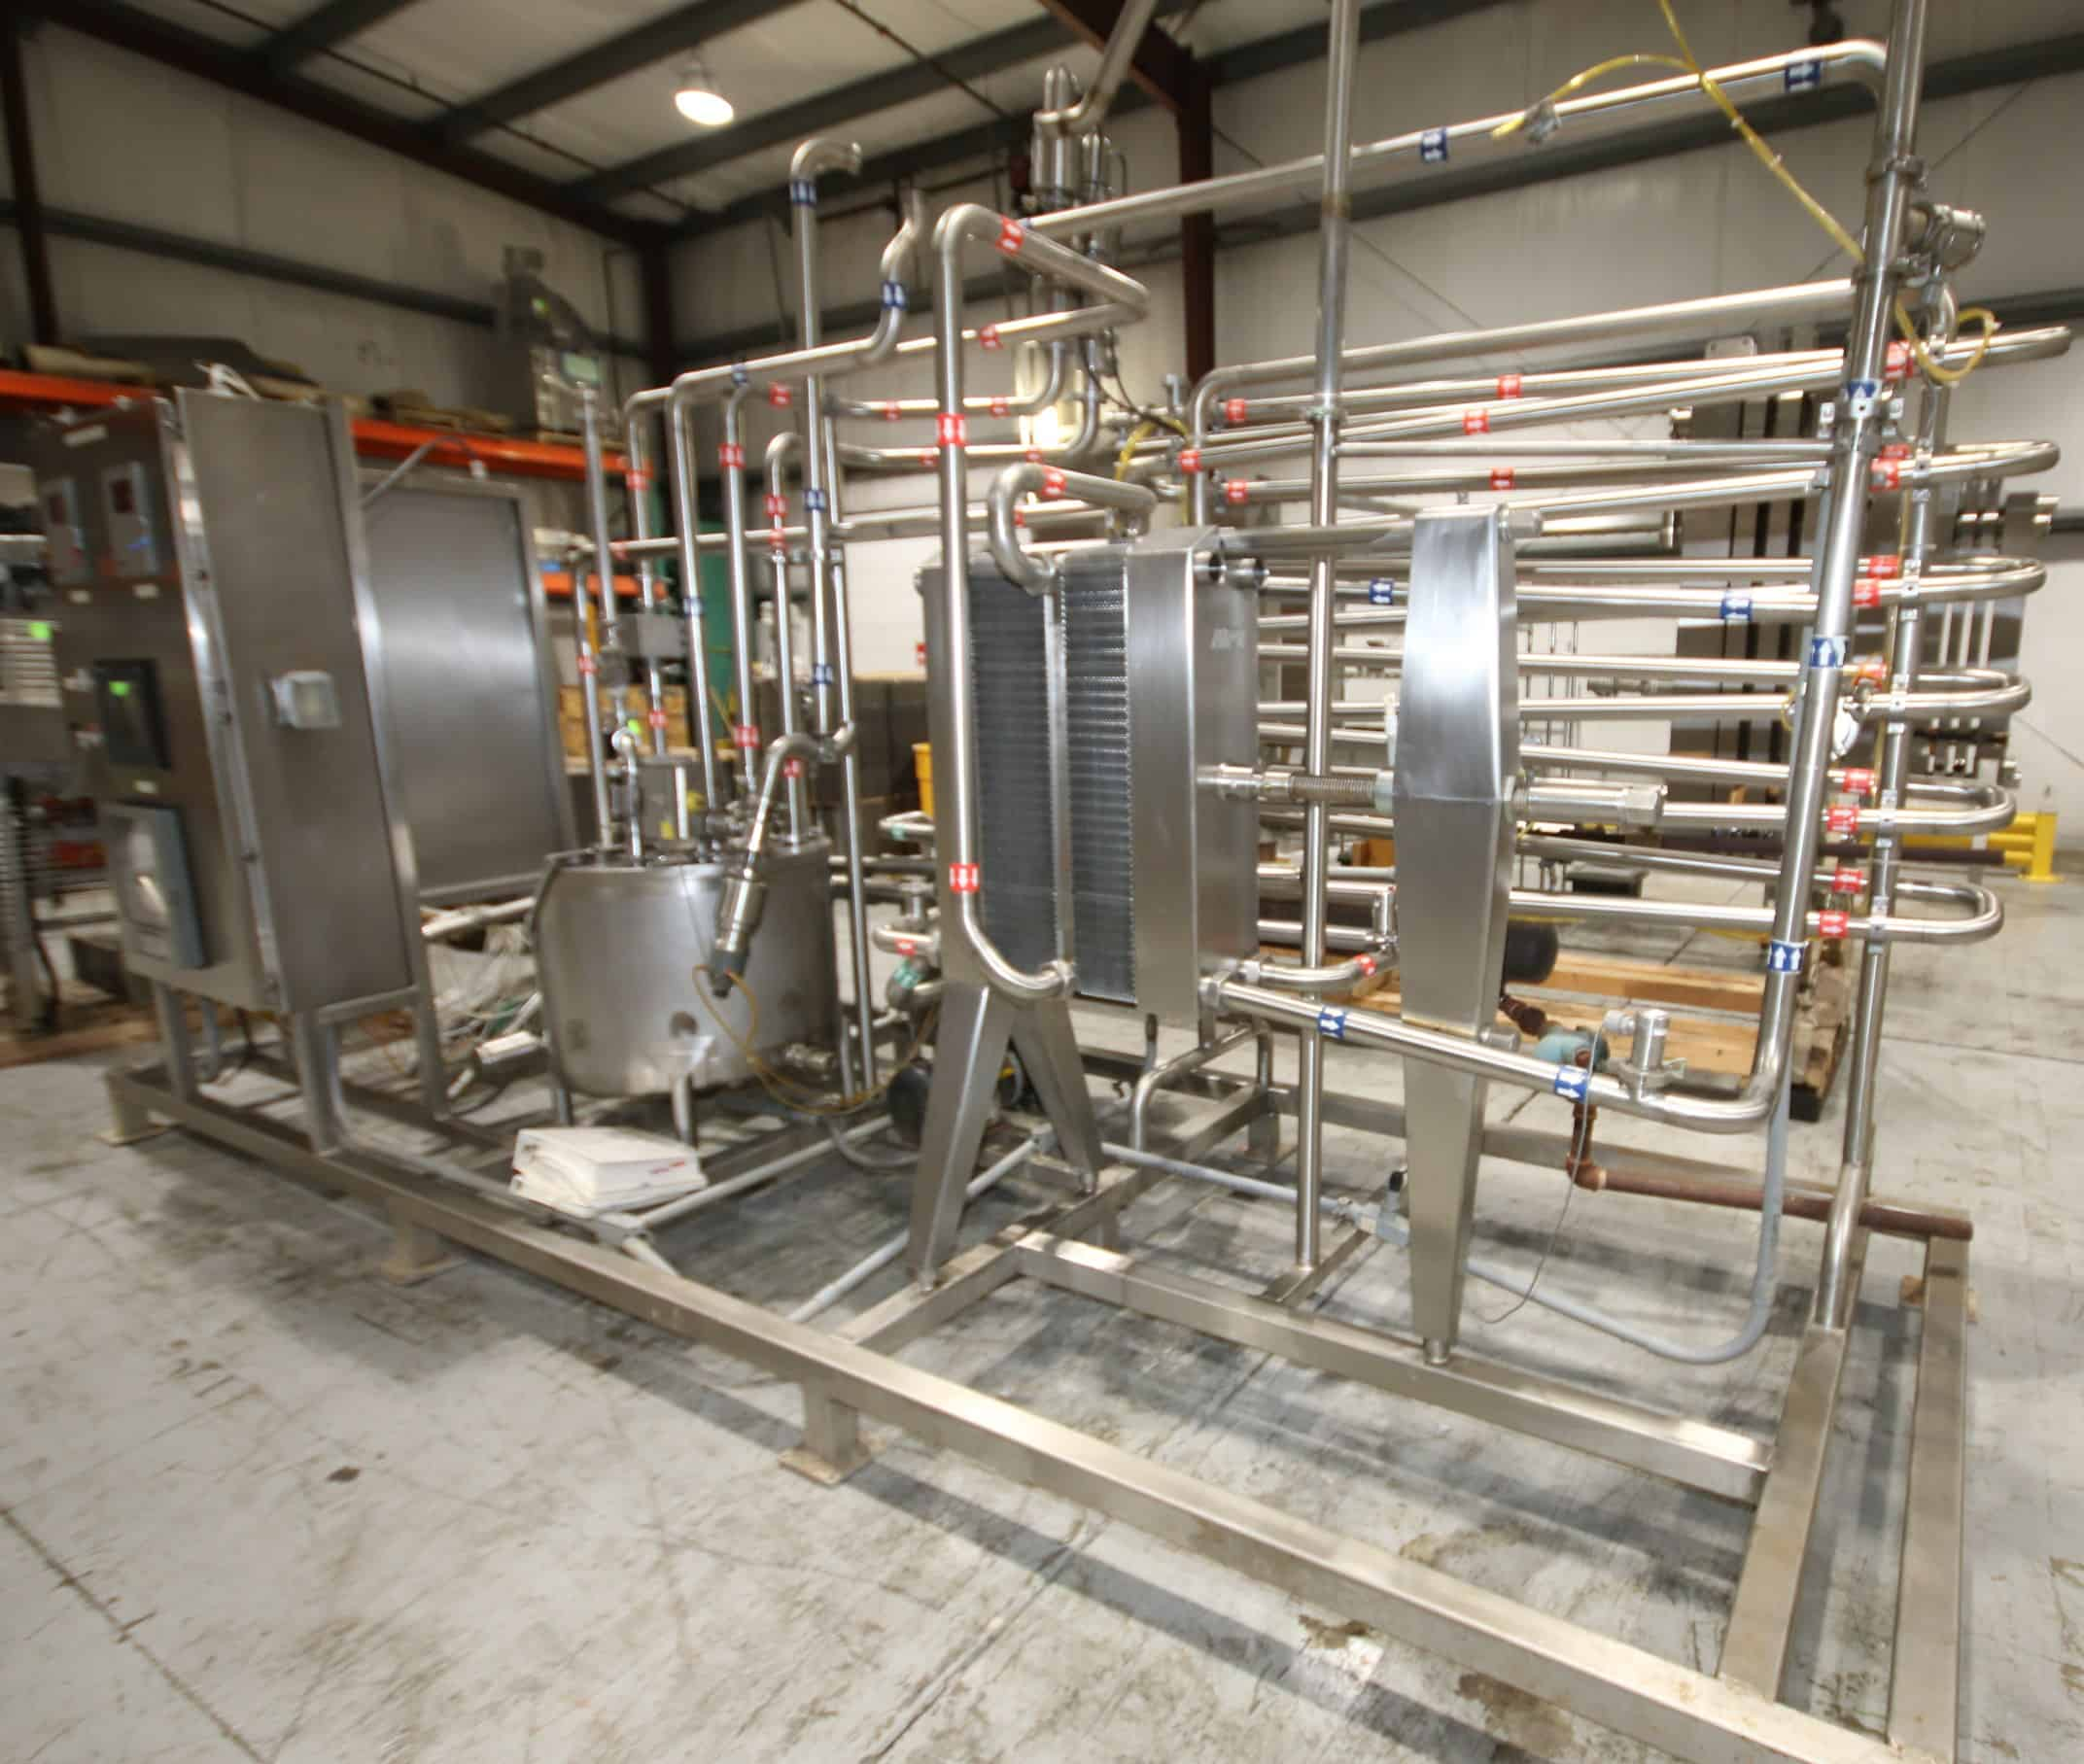 "Omni Integrated Solutions 33 GPM Skid-Mounted Cheese / Milk HTST System with APV Plate Pasteurizer, S/N 53-320 with (1) Divider, (71) Plates, 2"" Nested Holding Tubes, Tri-Clover 2"" Flow Diversion Valve, Allen Bradley MicroLogix 1000 Legal PLC Controller, Balance Tank, Shell and Tube Heat Exchanger with Make-Up Tank and Pump, Tri-Clover 2 hp and 7-1/2 hp Pumps, Anderson 2"" Flow Meter with Digital Read-Out, Related Valves and Piping, (4) On-Board Control Panels - (1) with Allen Bradley SLC 5/04 CPU Controls, PanelView 1000 Touchpad Display, Allen Bradley 7.5 and 3 hp PowerFlex 400 VFD's, Anderson AV-900 Chart Recorder, Anderson Differential and Temperature Controls (**SUBJECT TO CONFIRMATION**), M. Davis Group, Showroom Auction, Pittsburgh, PA"